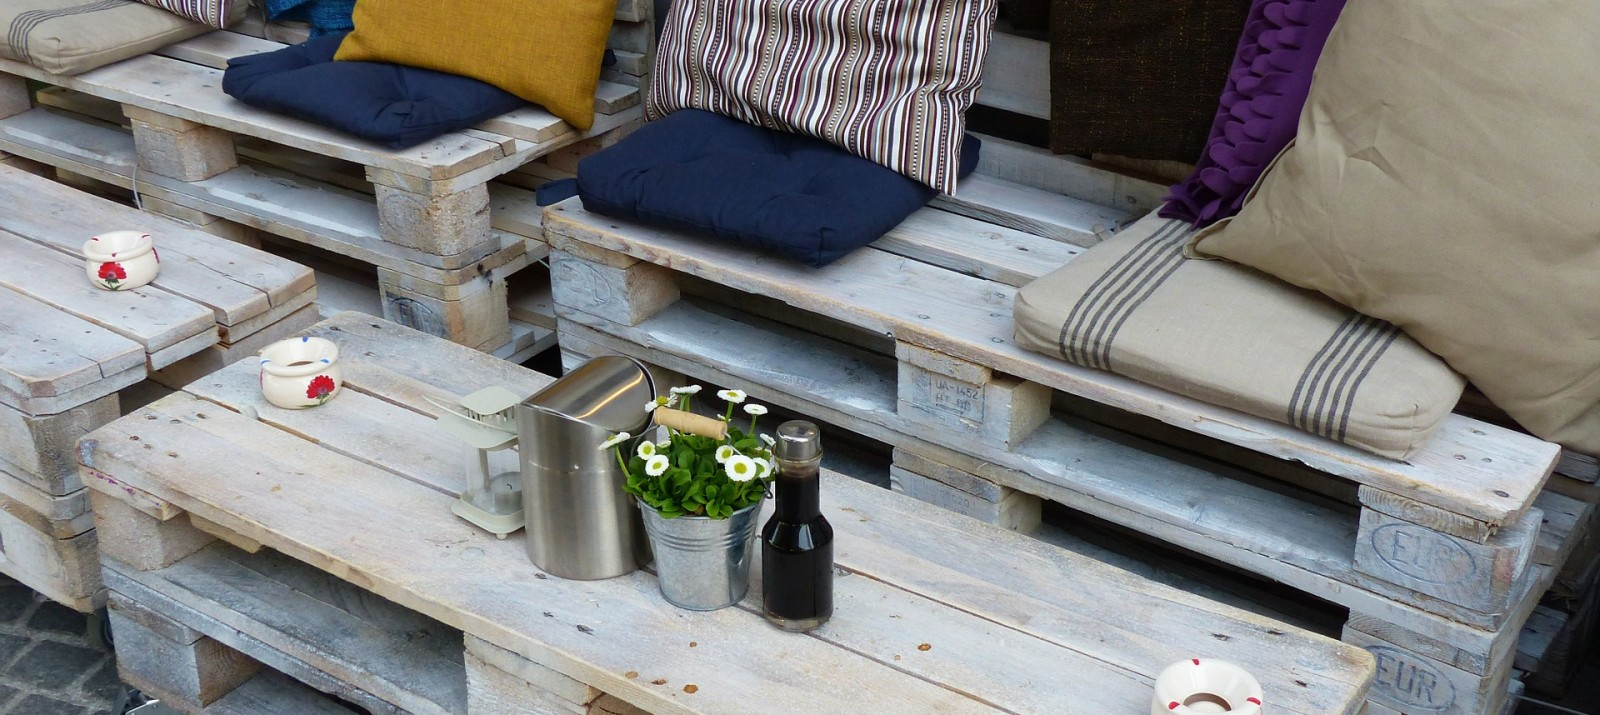 Are pallets considered reclaimed wood?